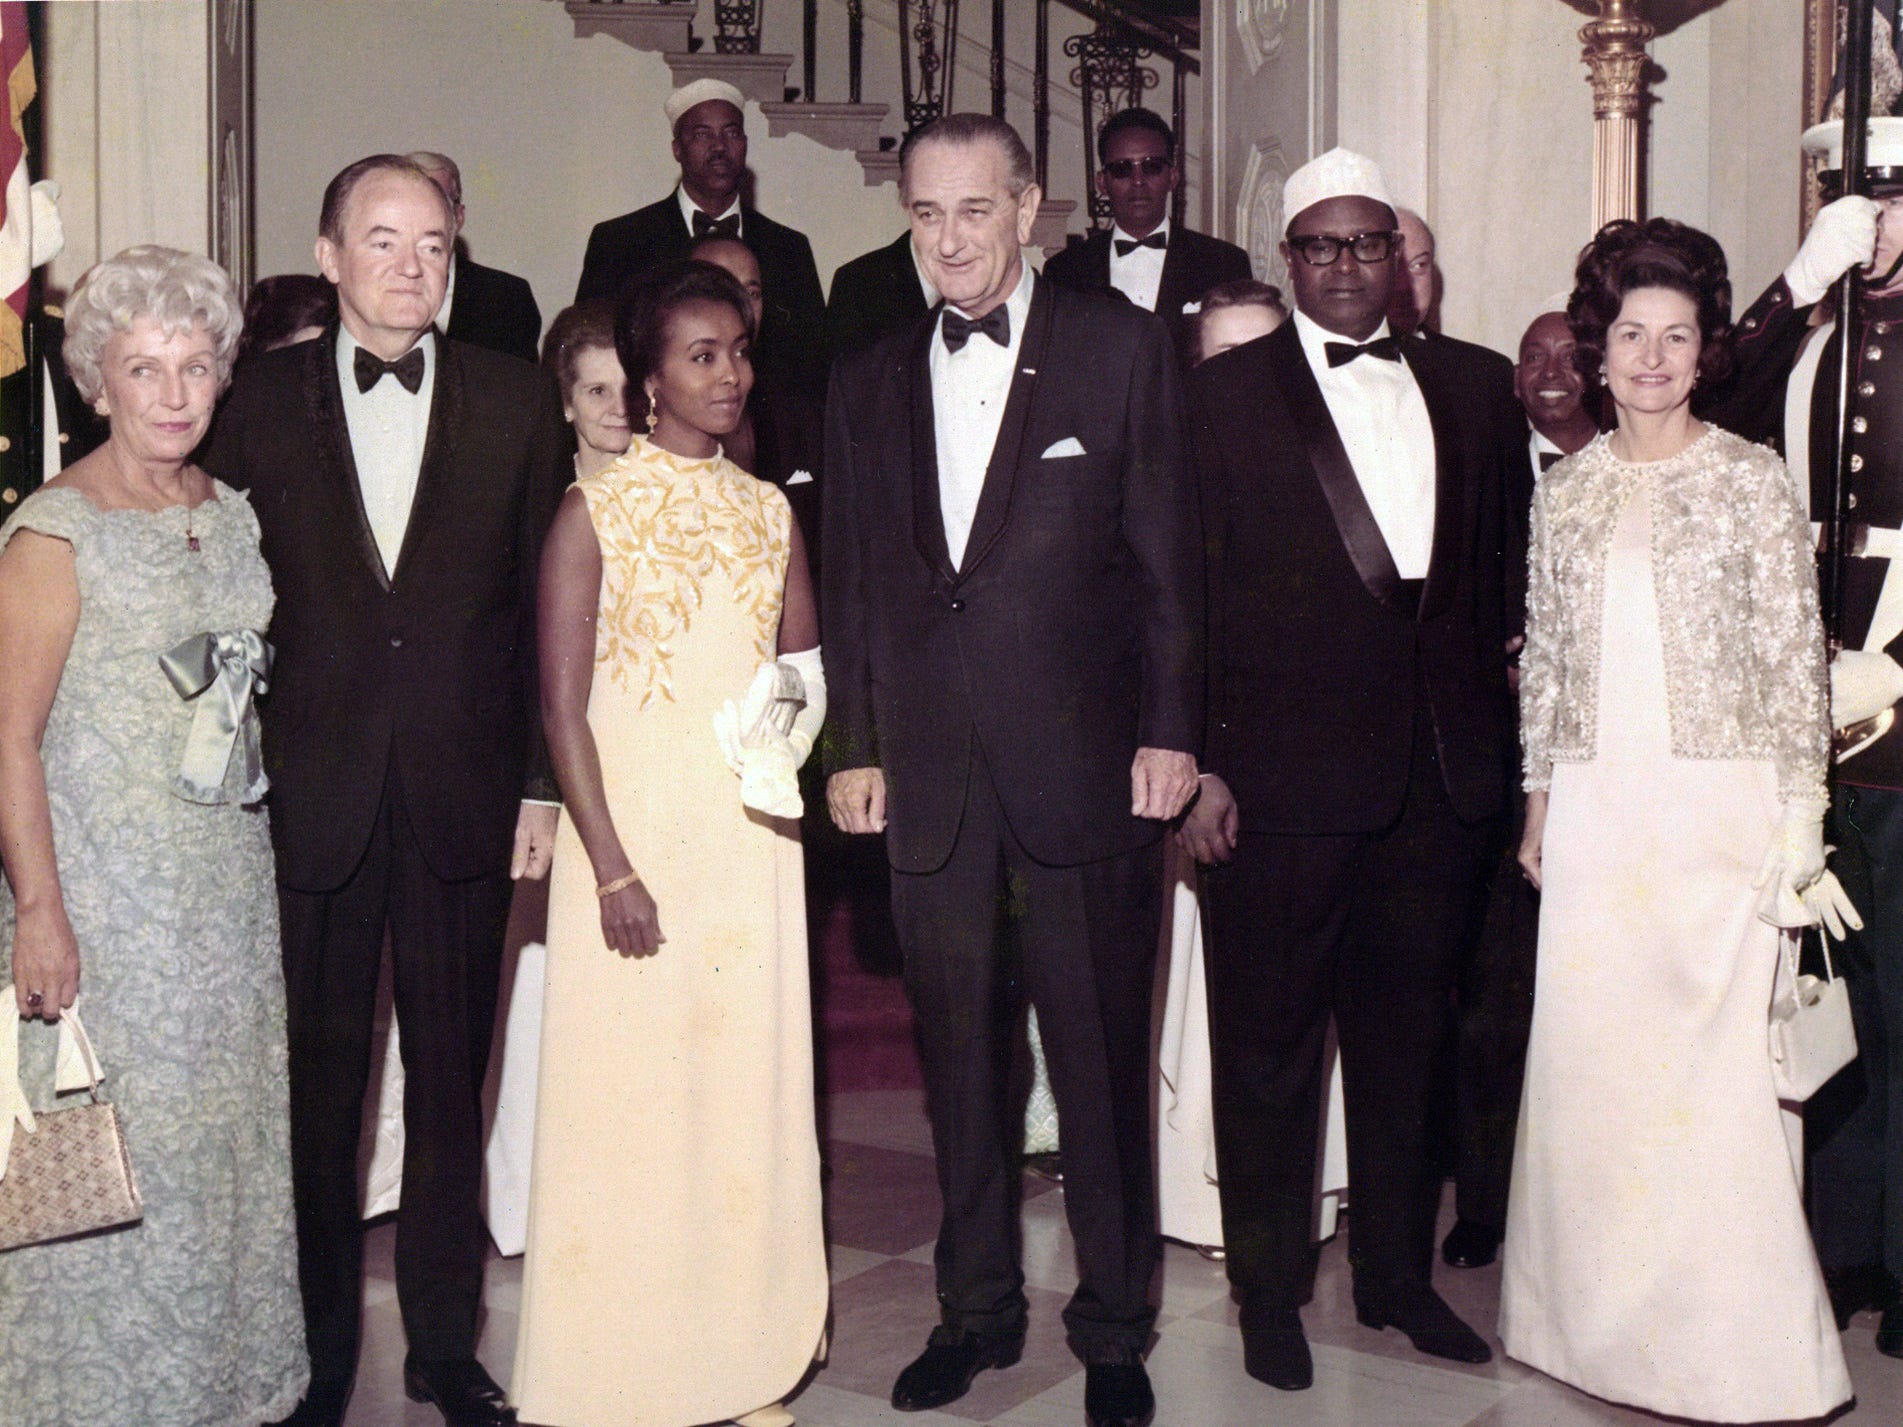 """Part of the """"Somalis + Minnesota"""" exhibit at the Minnesota History Center in St. Paul, a photo of Somali Prime Minister Mohamed Haji Ibrahim Egal with President Lyndon Johnson and Vice President Hubert Humphrey in Washington, D.C, in March 1968."""